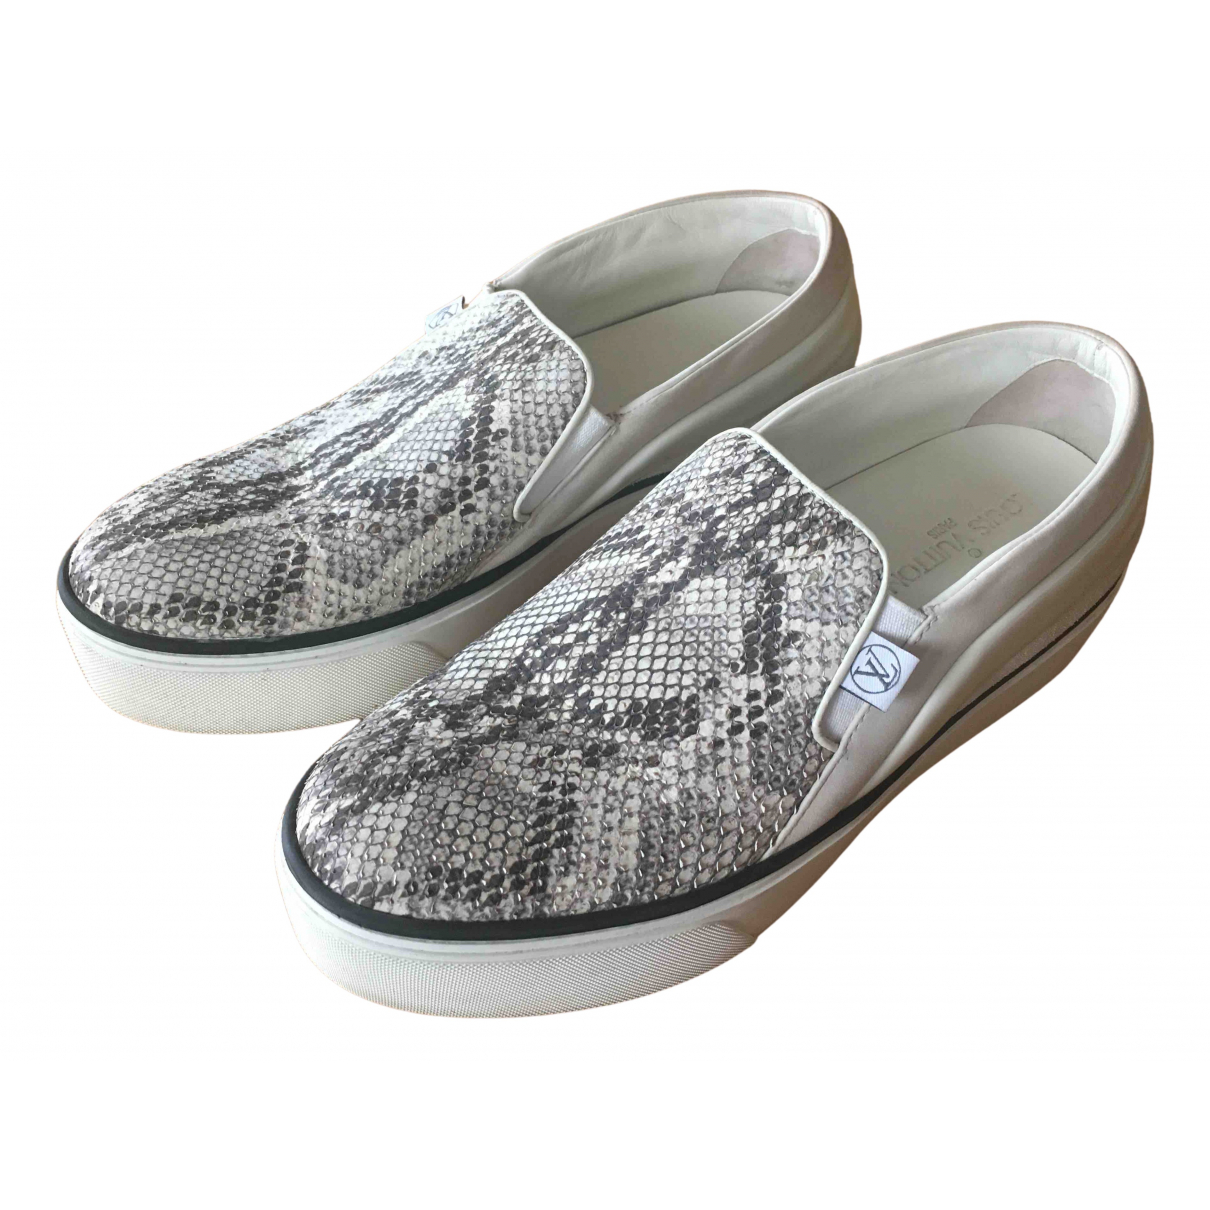 Louis Vuitton - Baskets   pour femme en python - gris